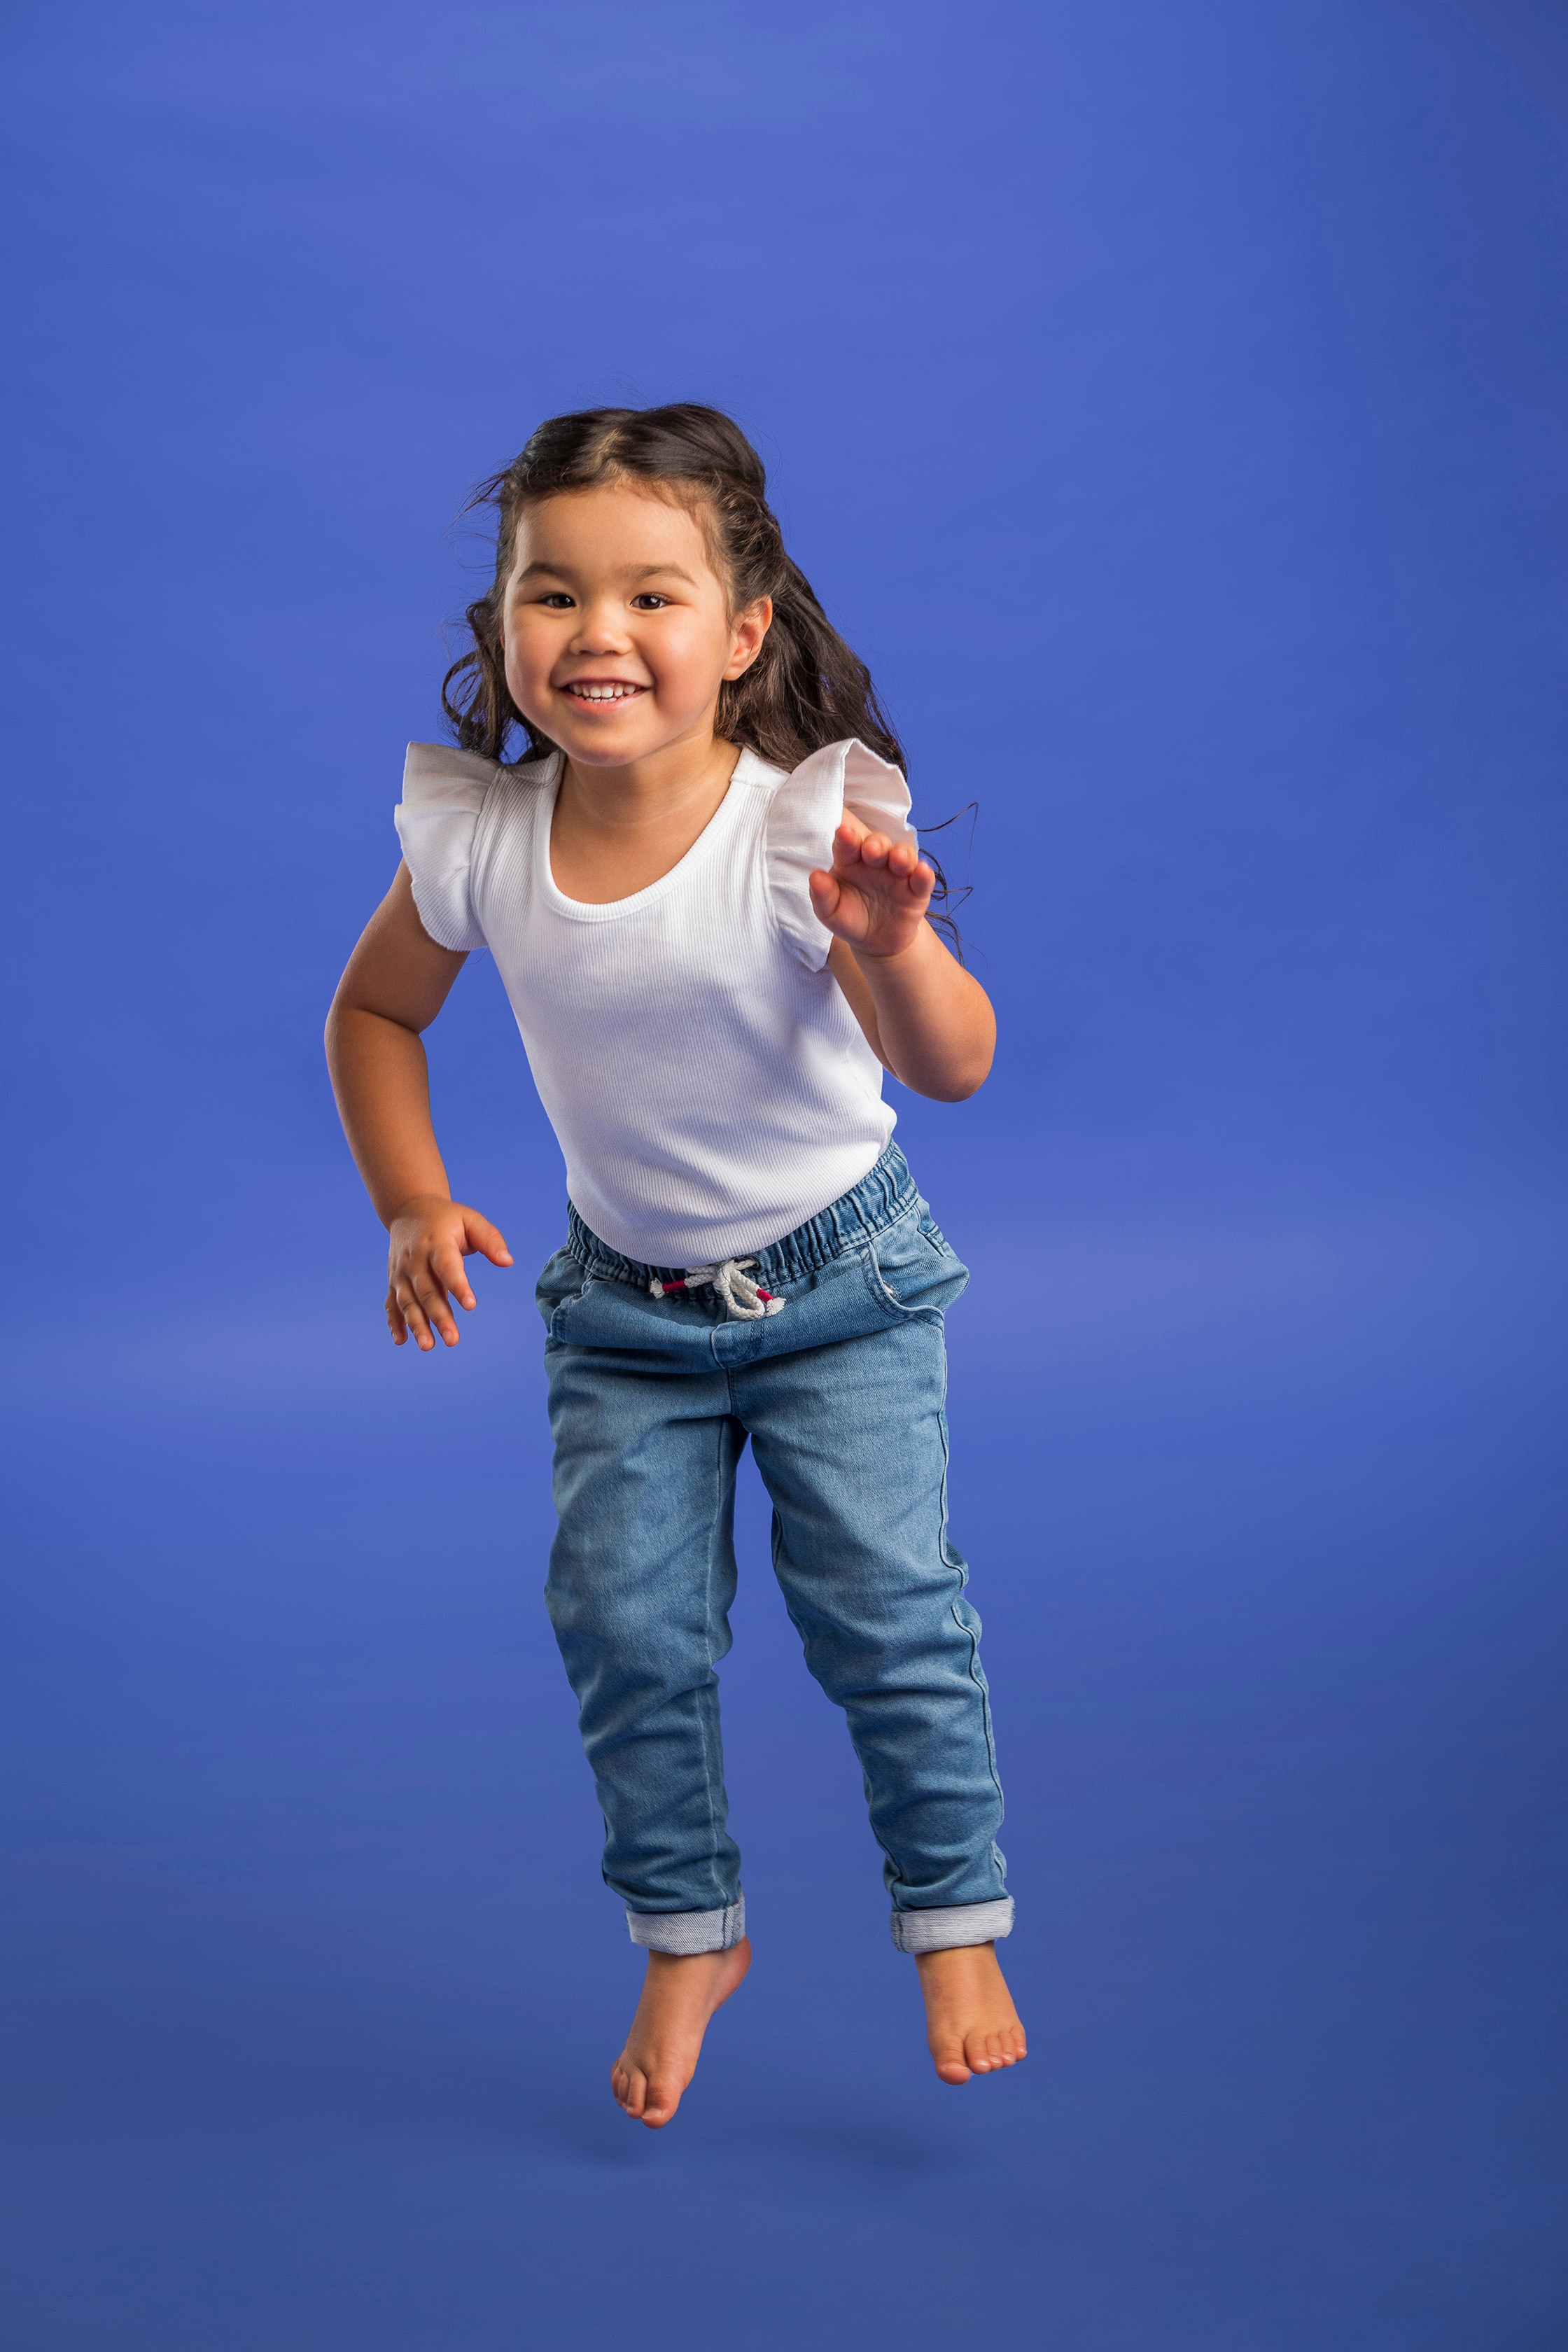 Sora, a four year old girl who was born with Leber's congenital amaurosi, jumps for the photoshoot for Jeans and Genes.